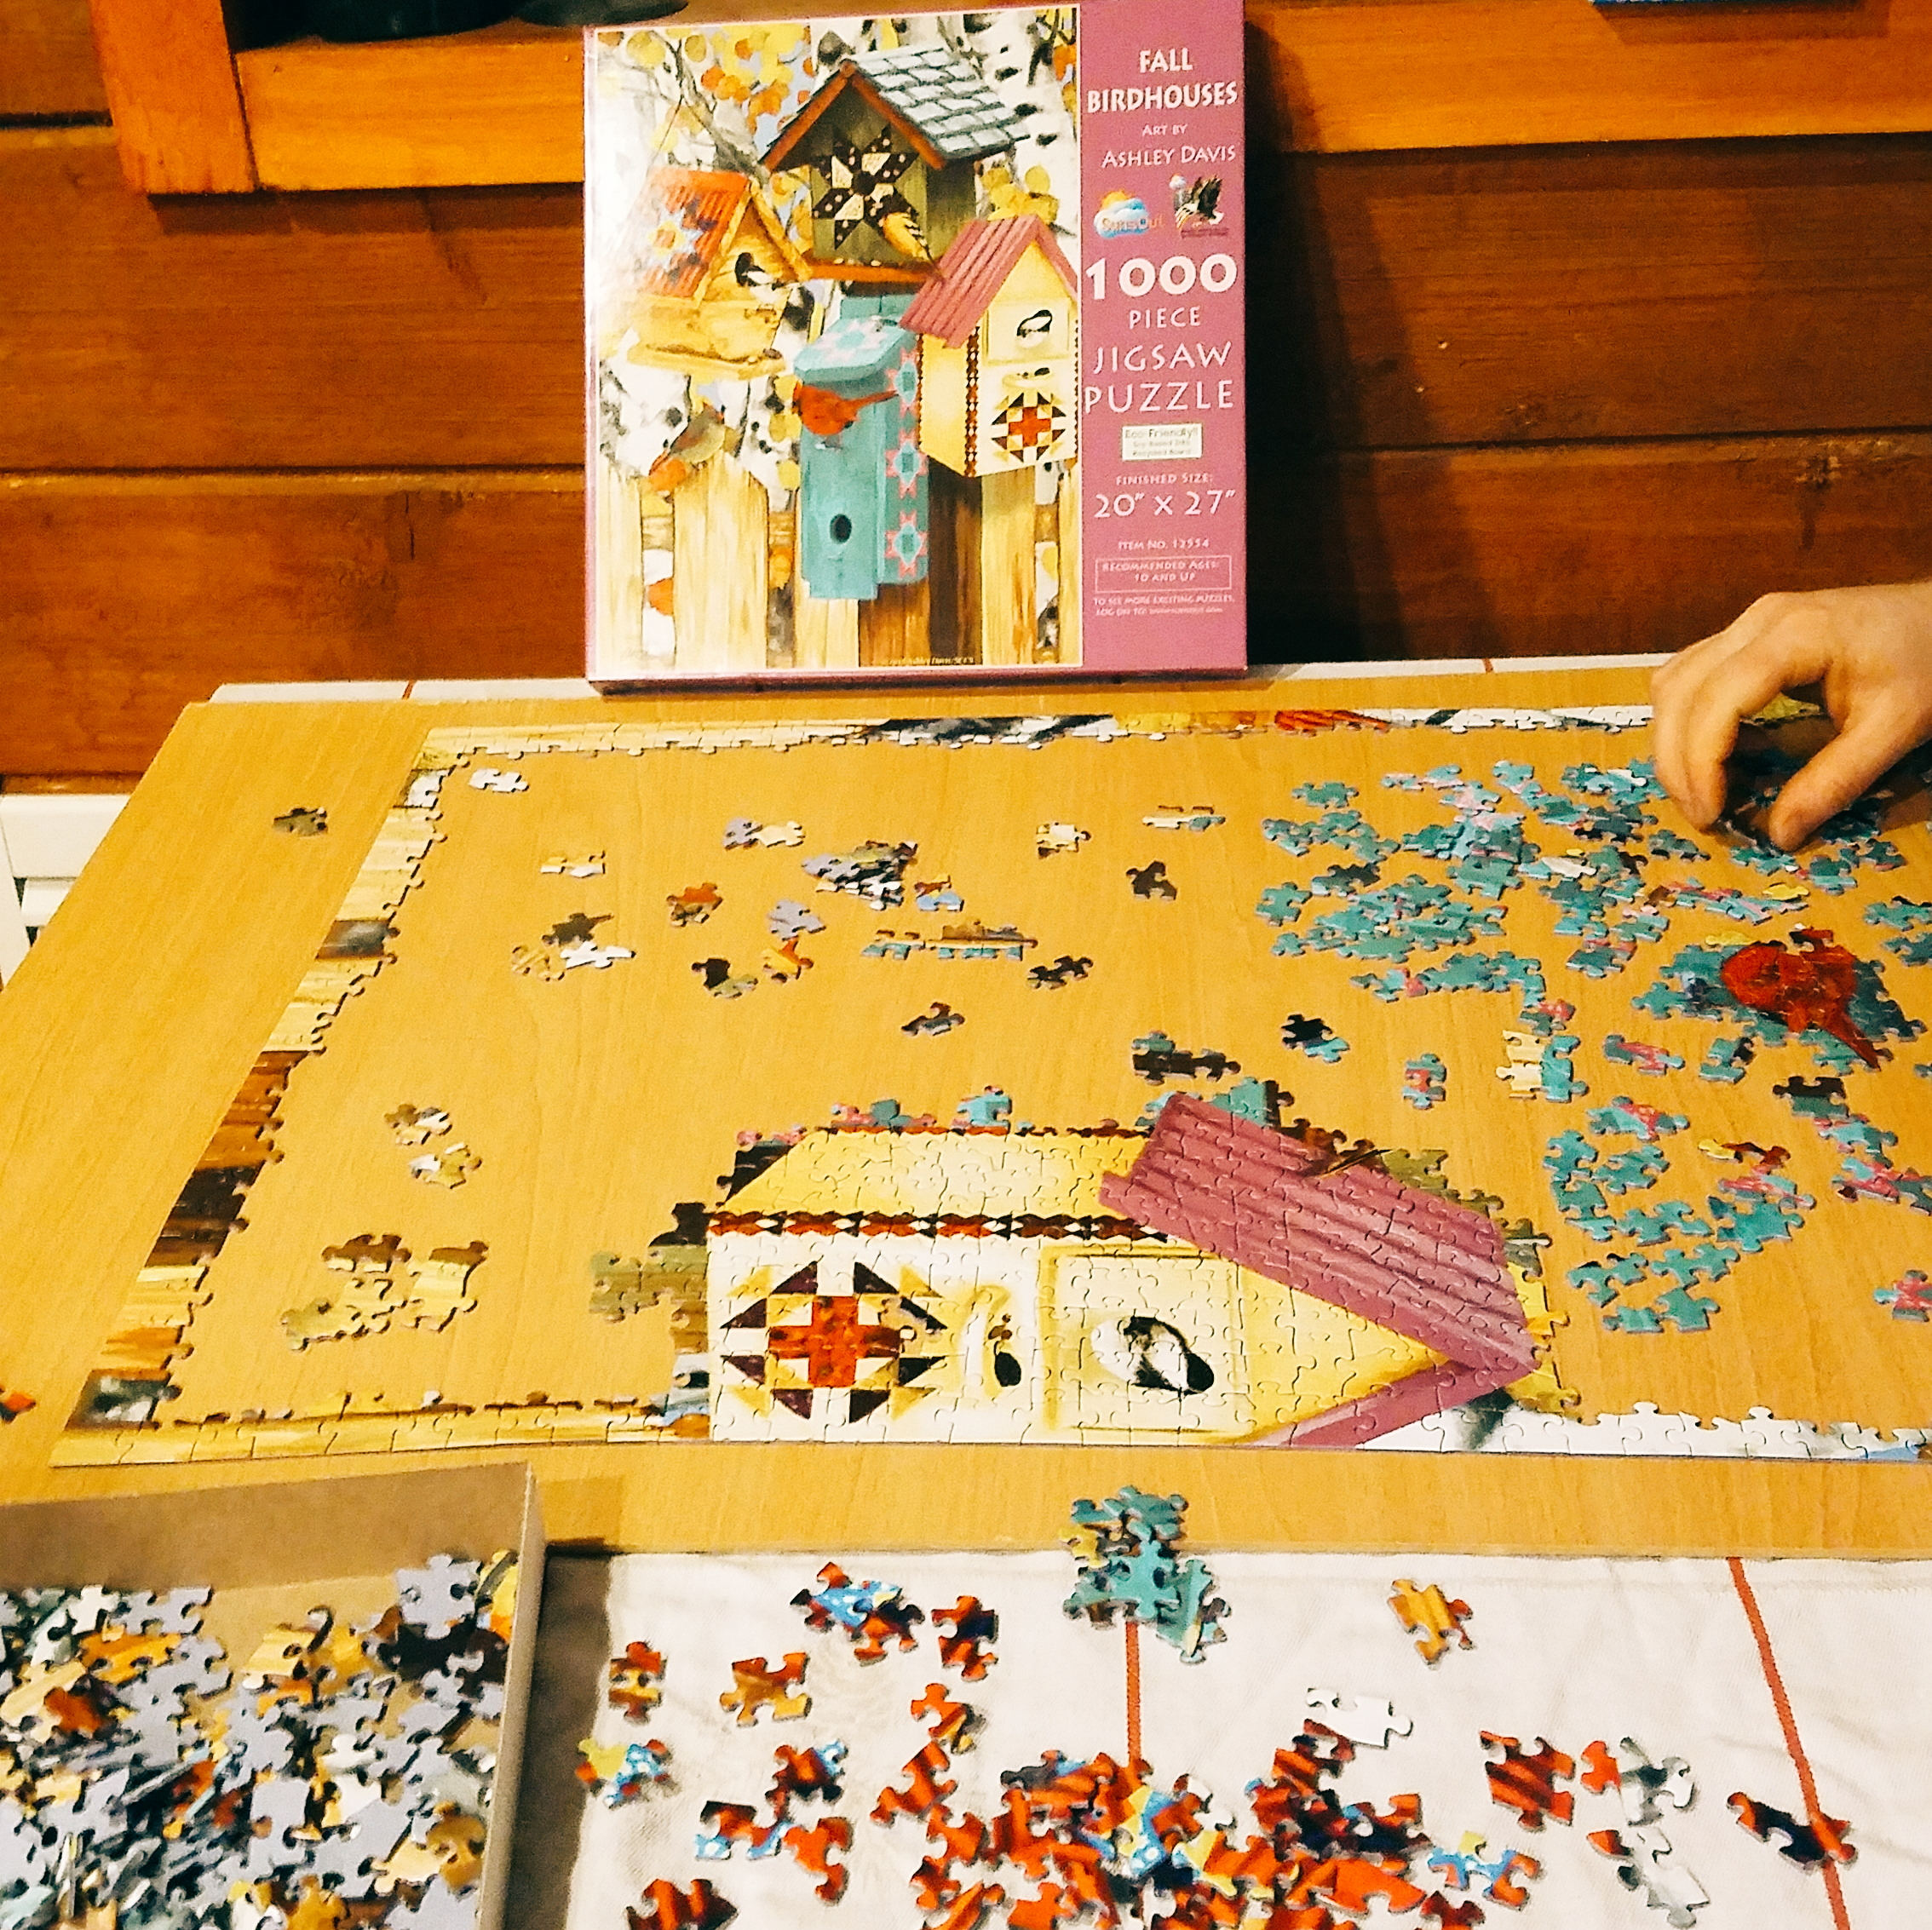 Late night puzzles - very hygge!